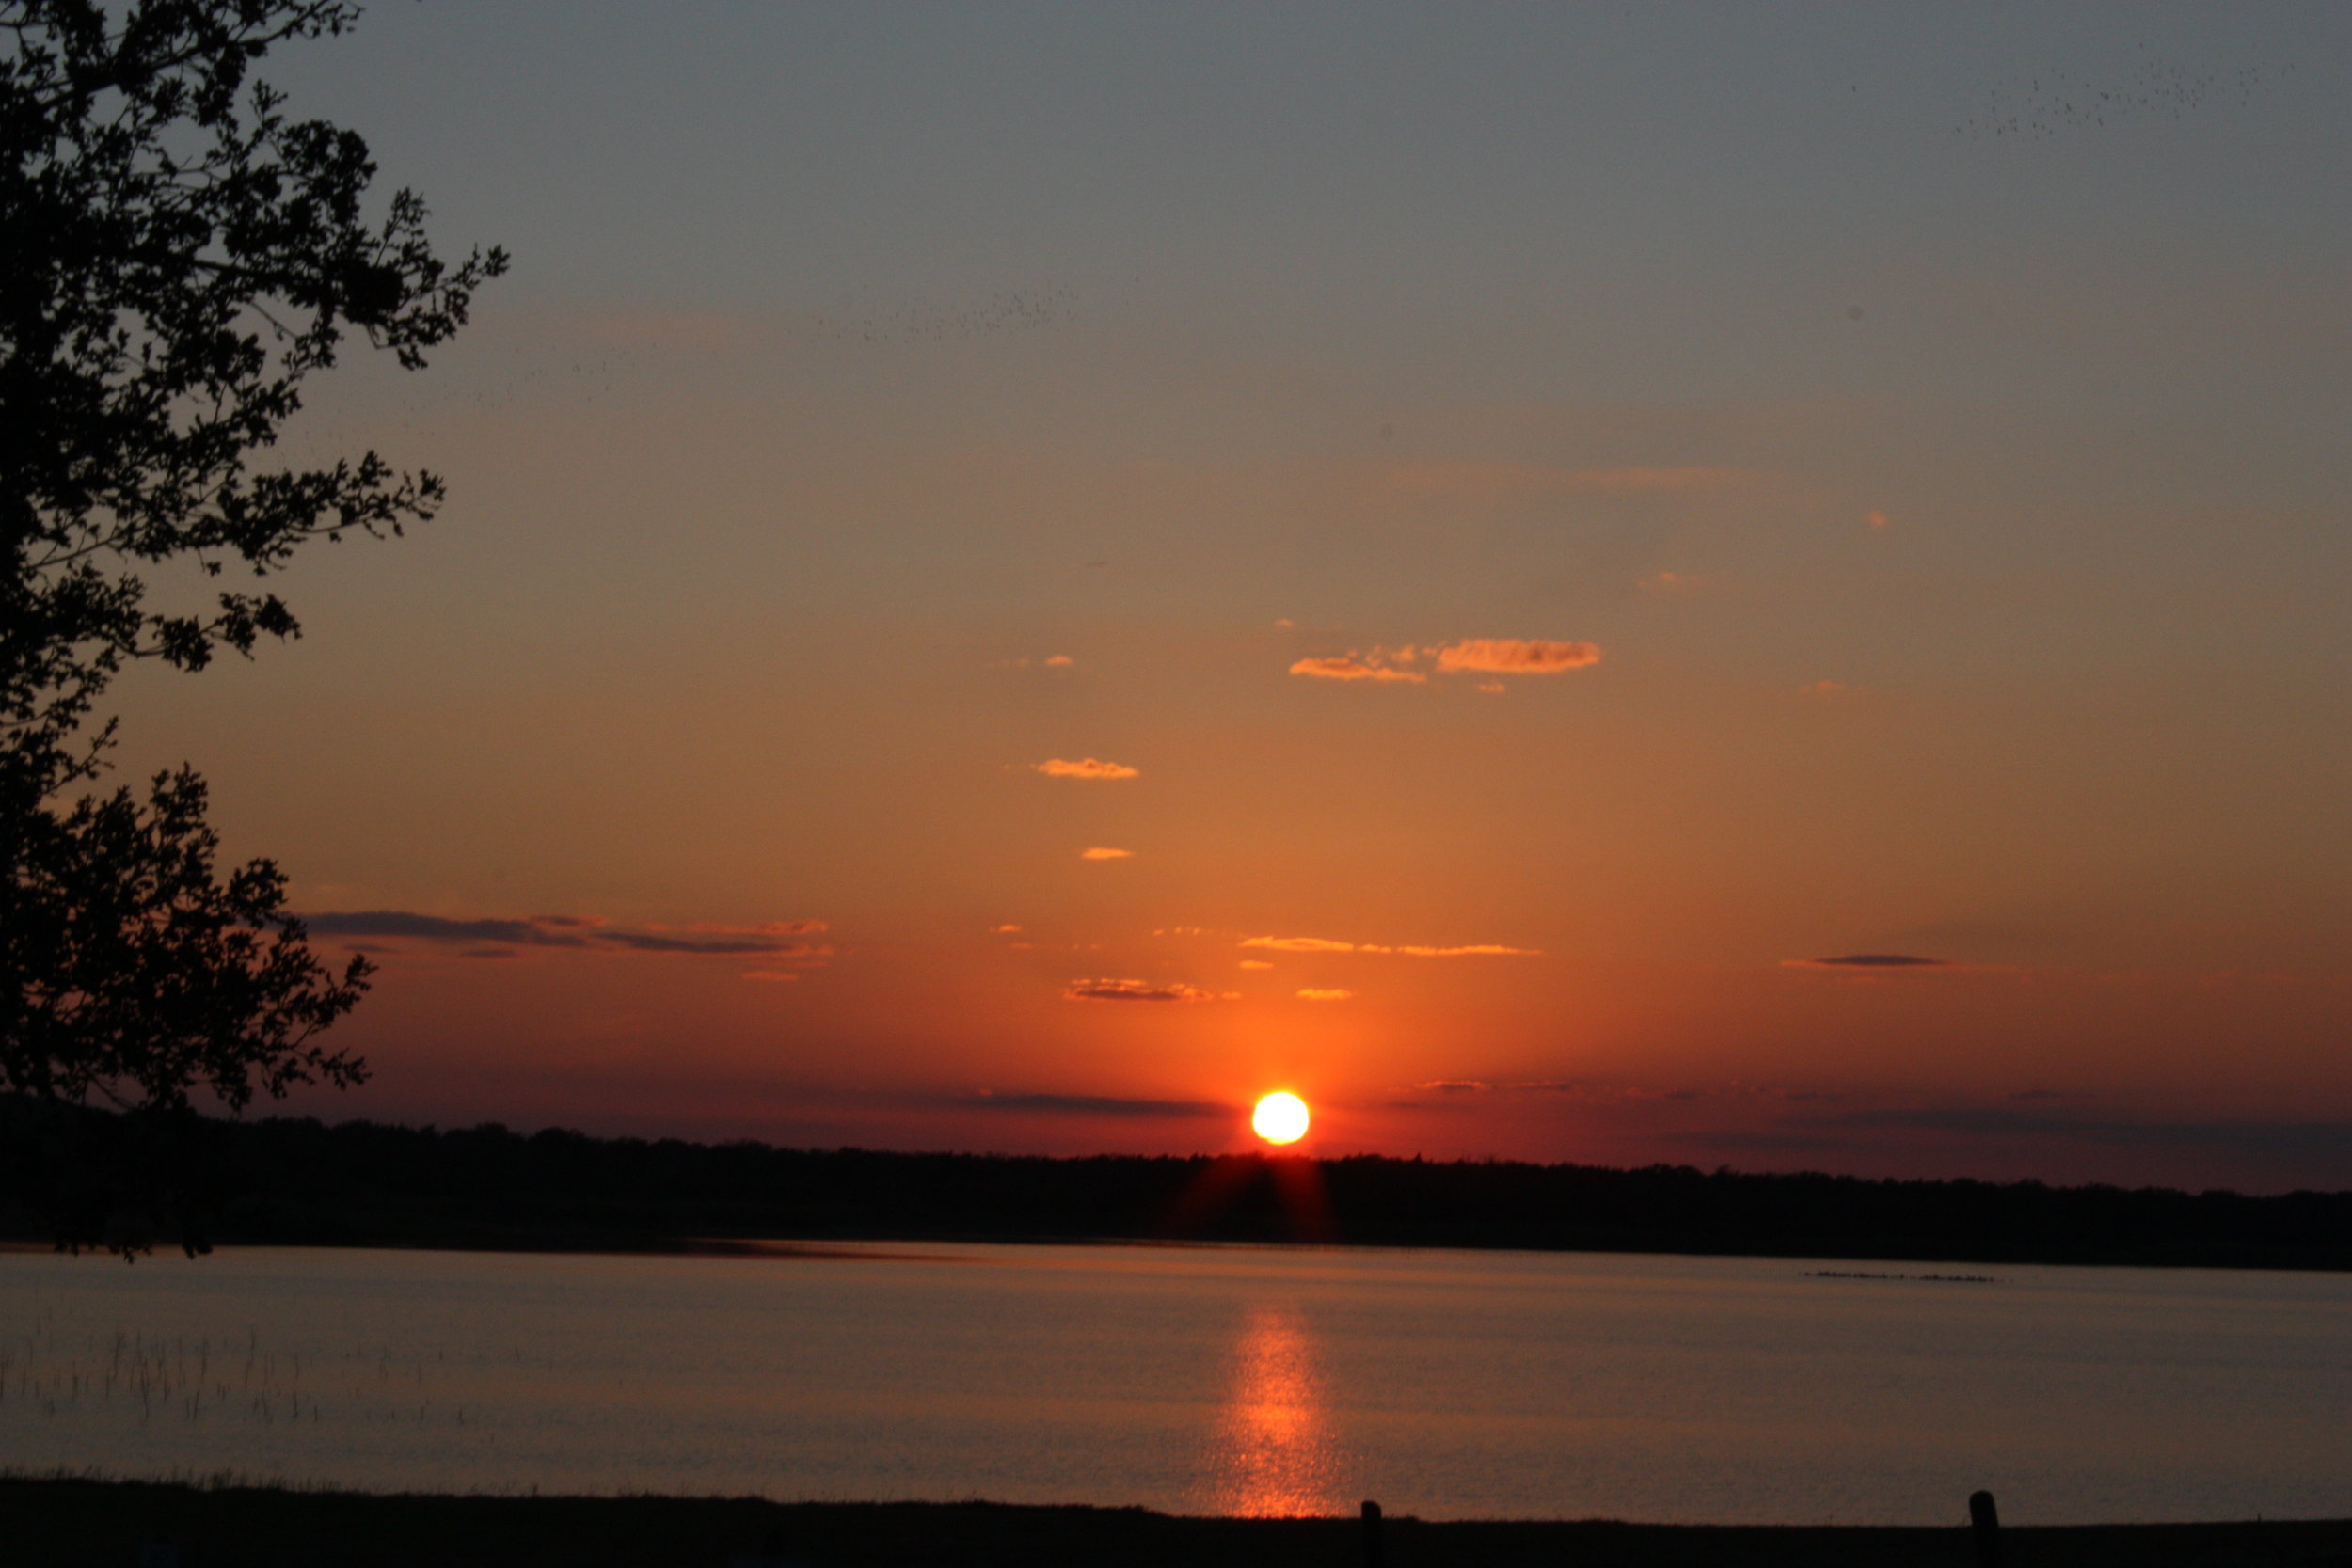 Sunset on Lake Somerville